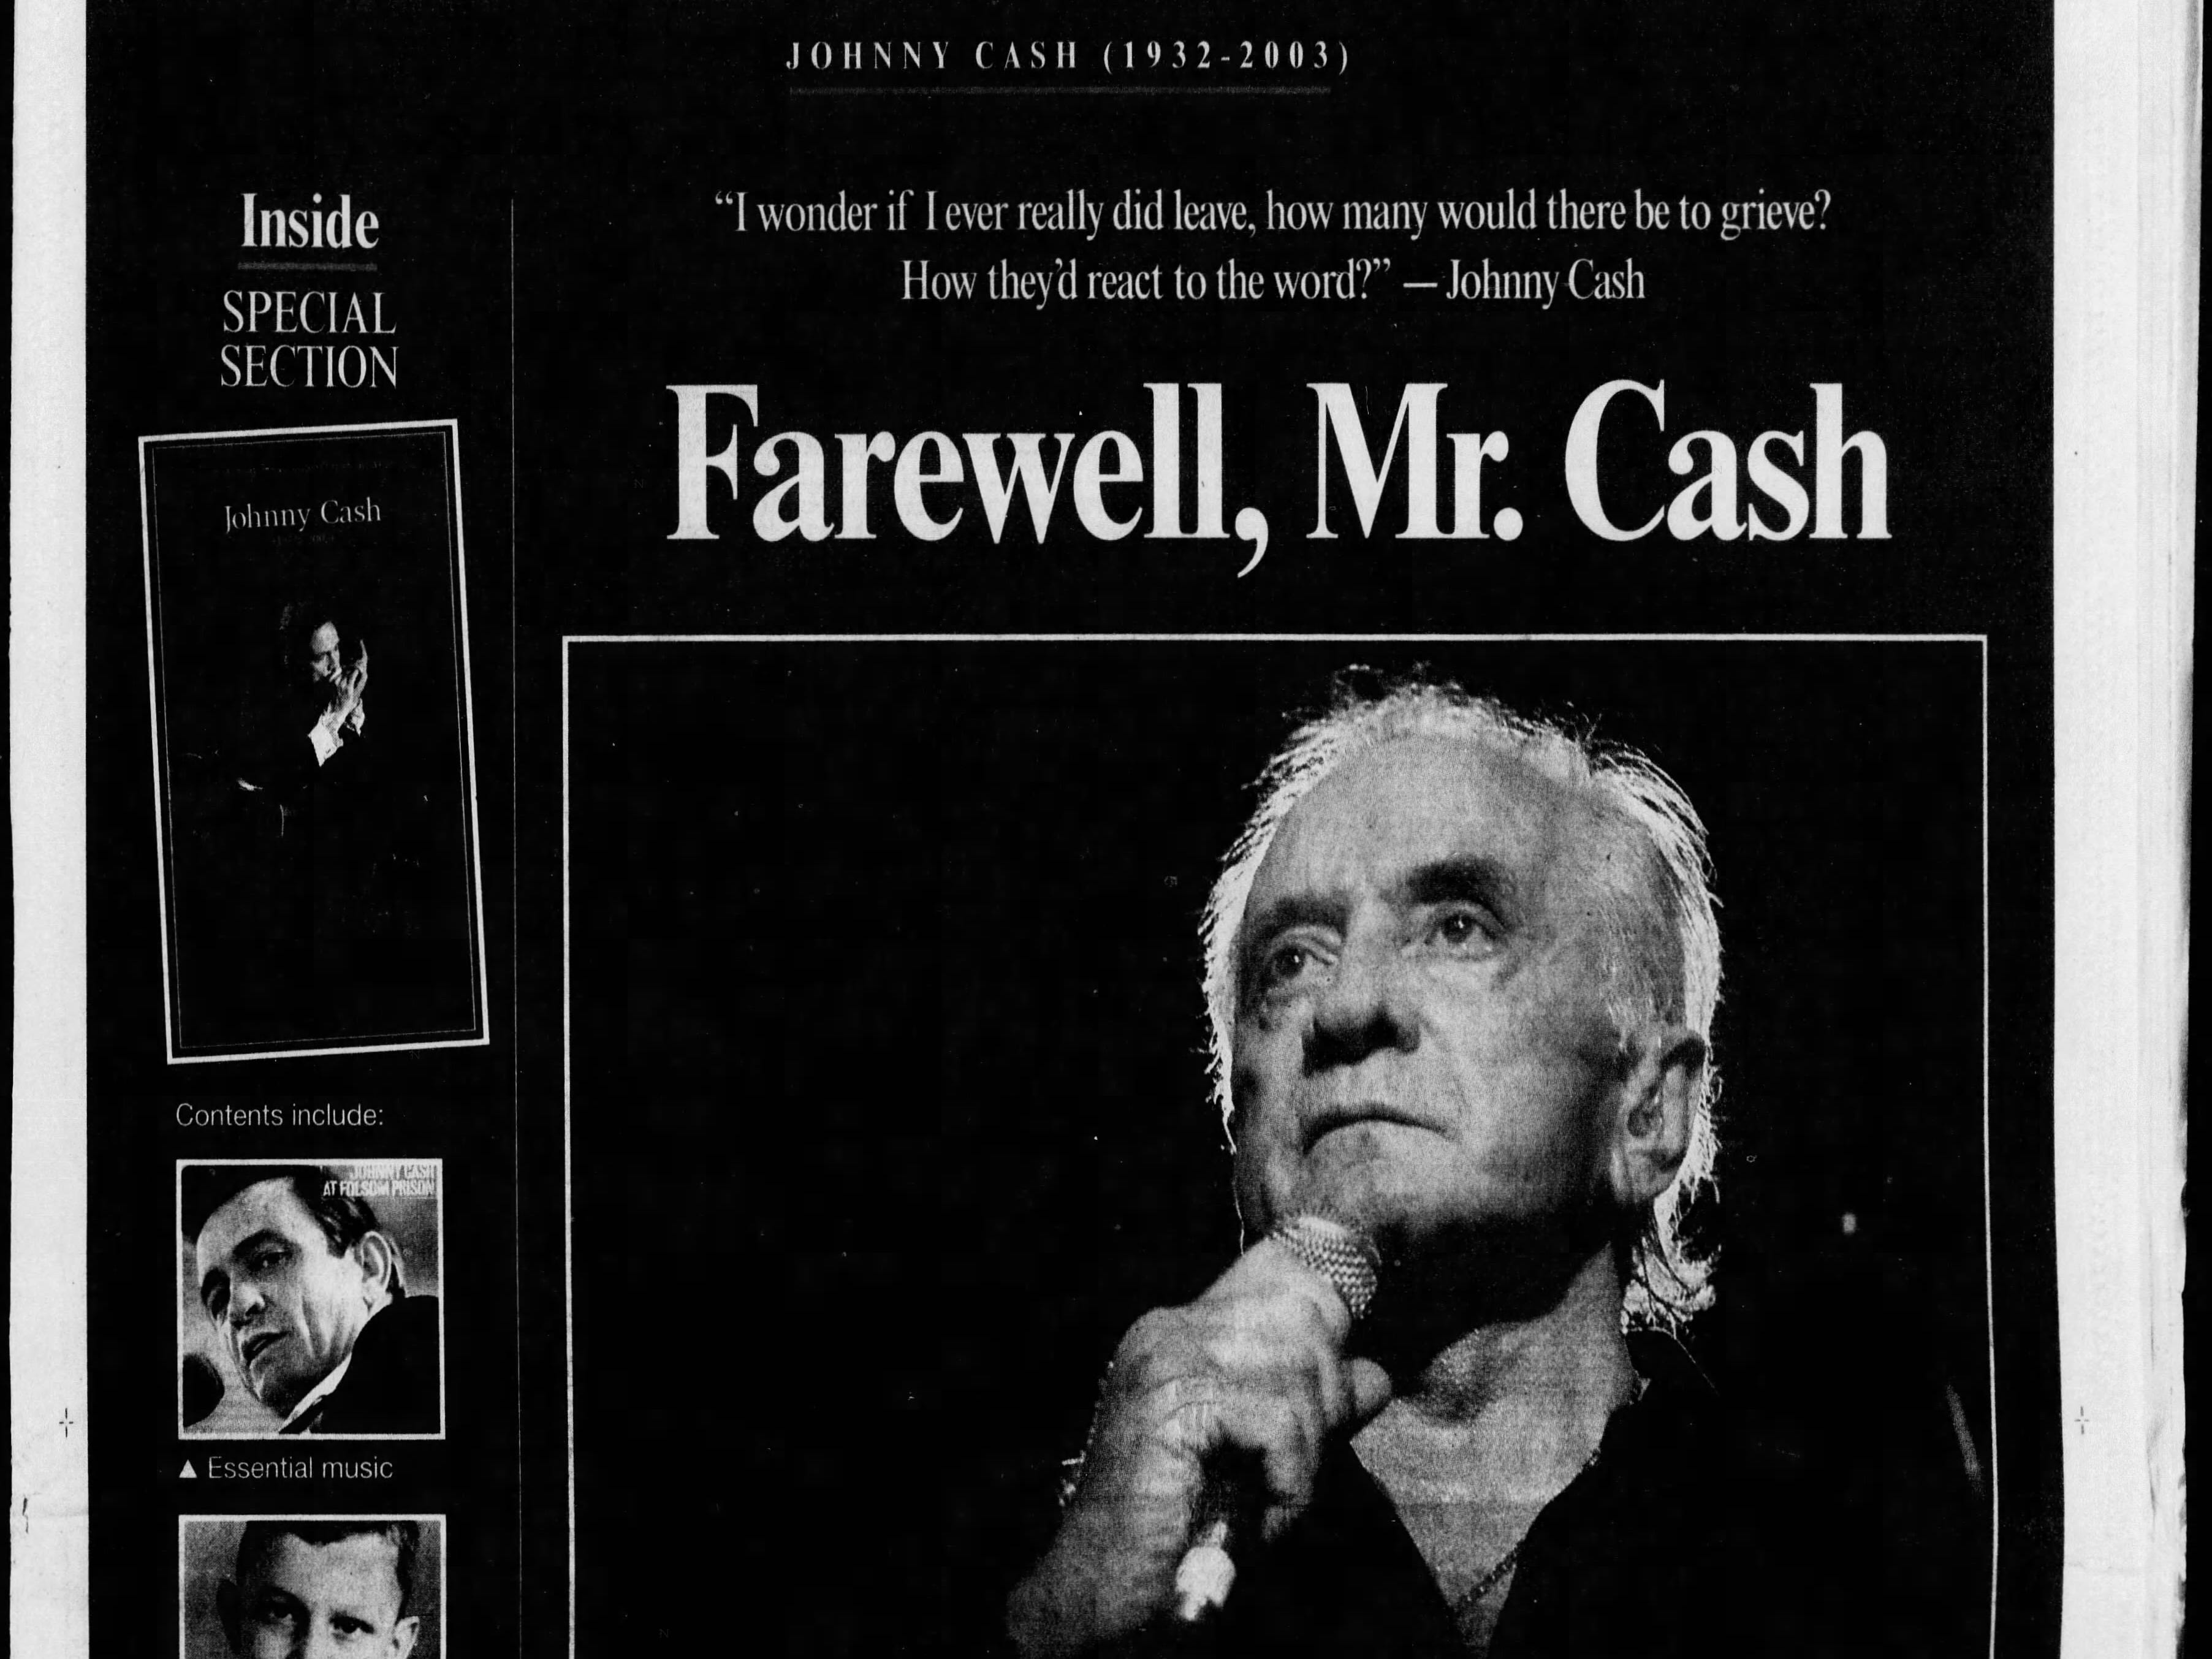 The front page of the Sept. 13, 2003 of The Tennessean for the coverage of the death of Johnny Cash.